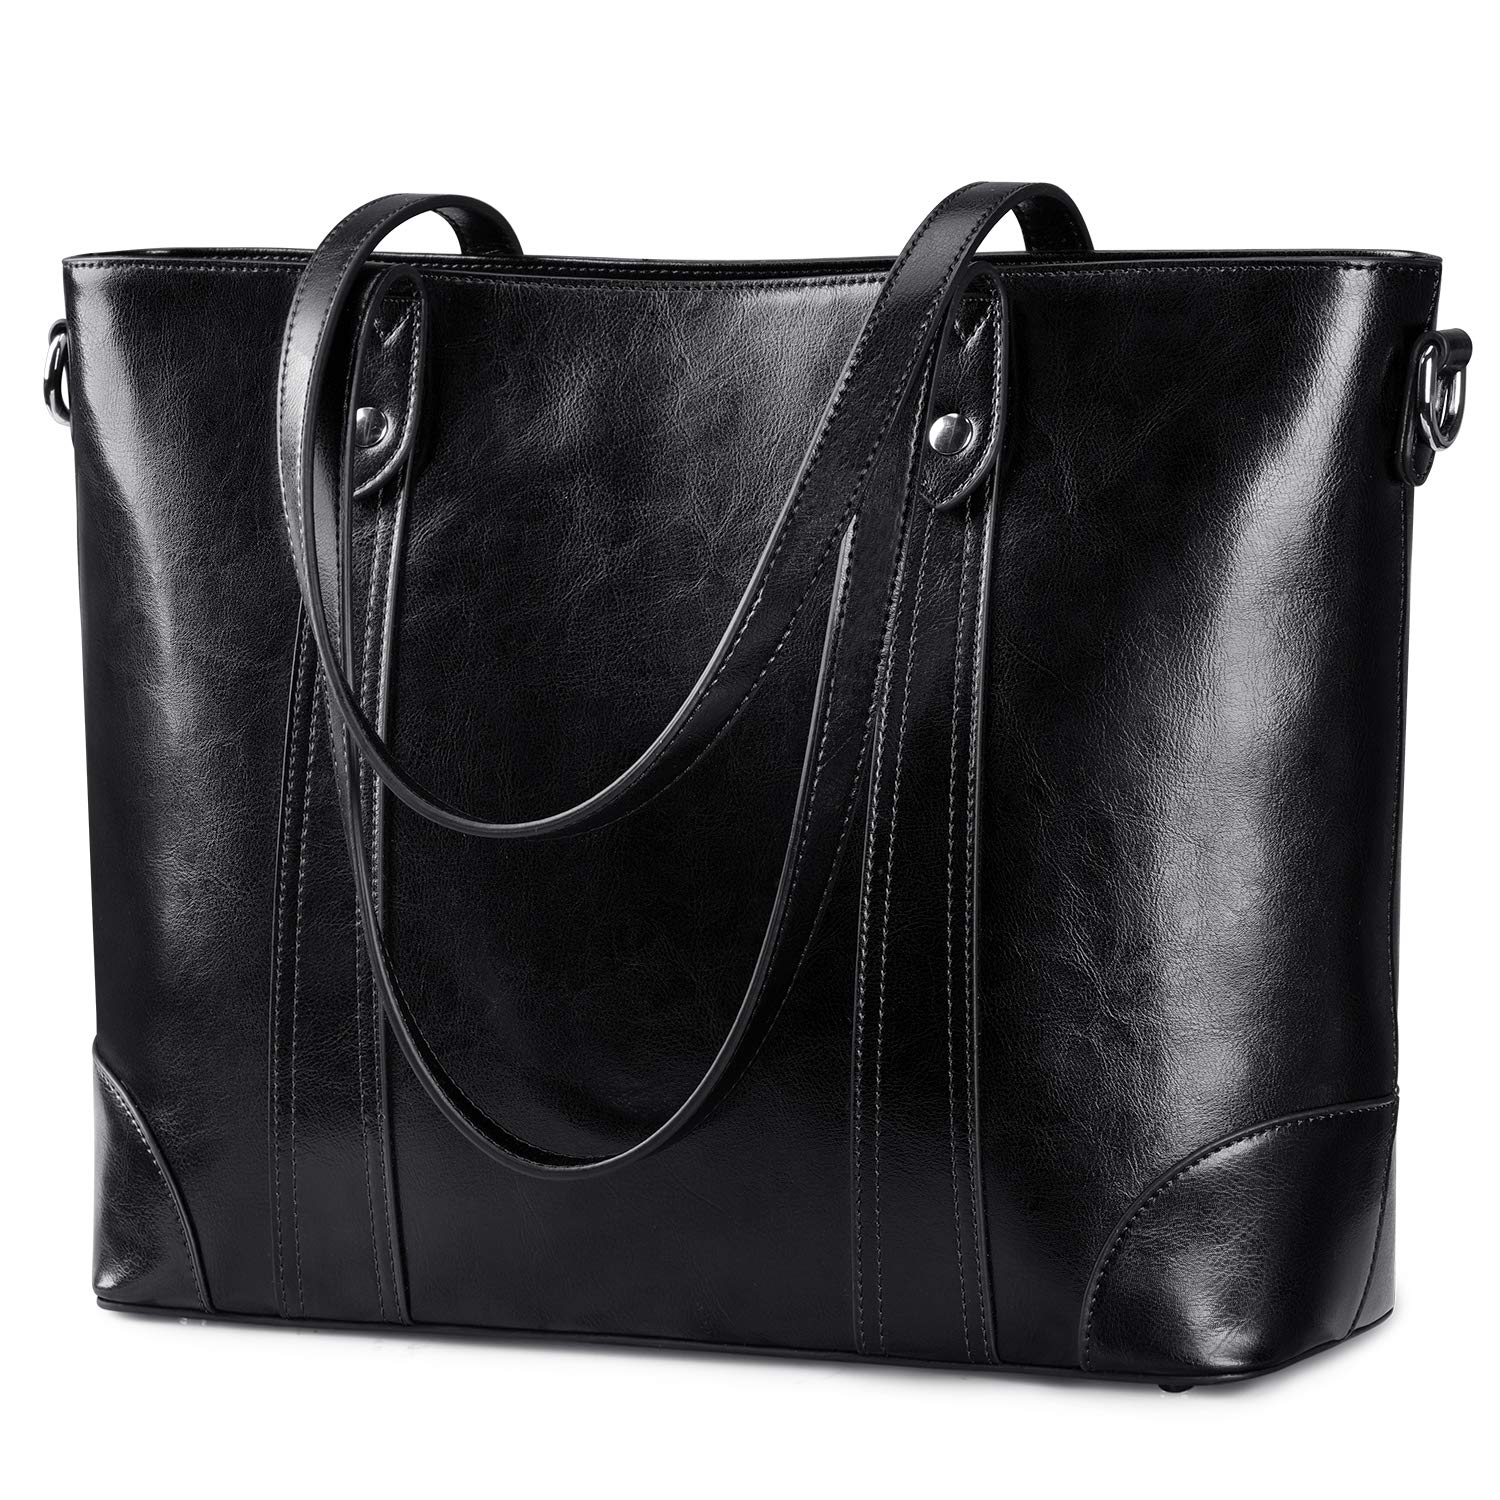 S-ZONE 15.6'' Leather Laptop Bag for Women Shoulder Bag Large Work Tote with Padded Compartment